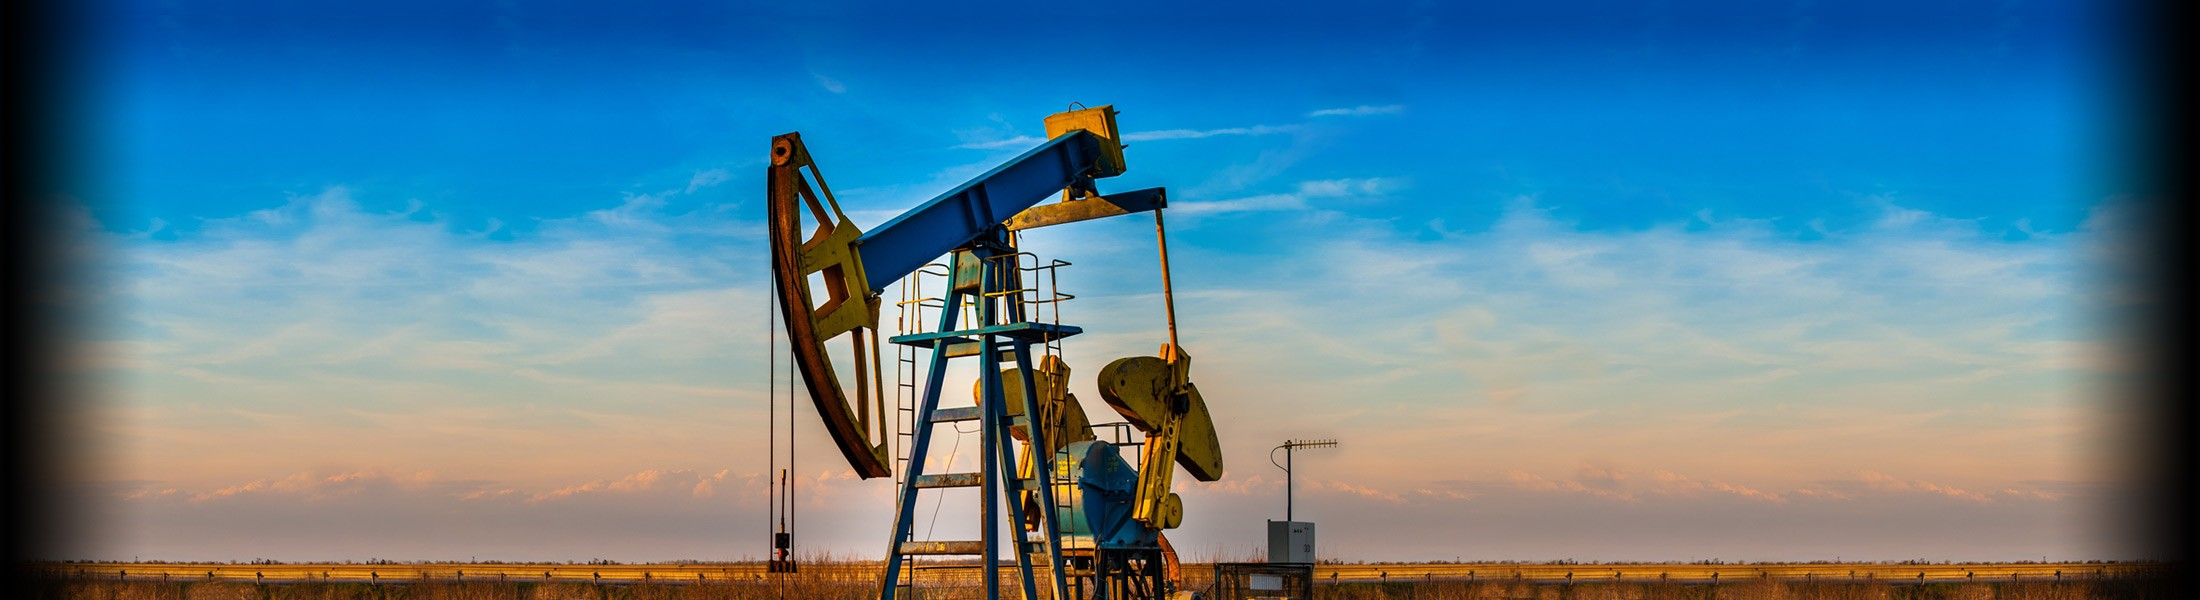 Canada Company - Serving You Since 1947